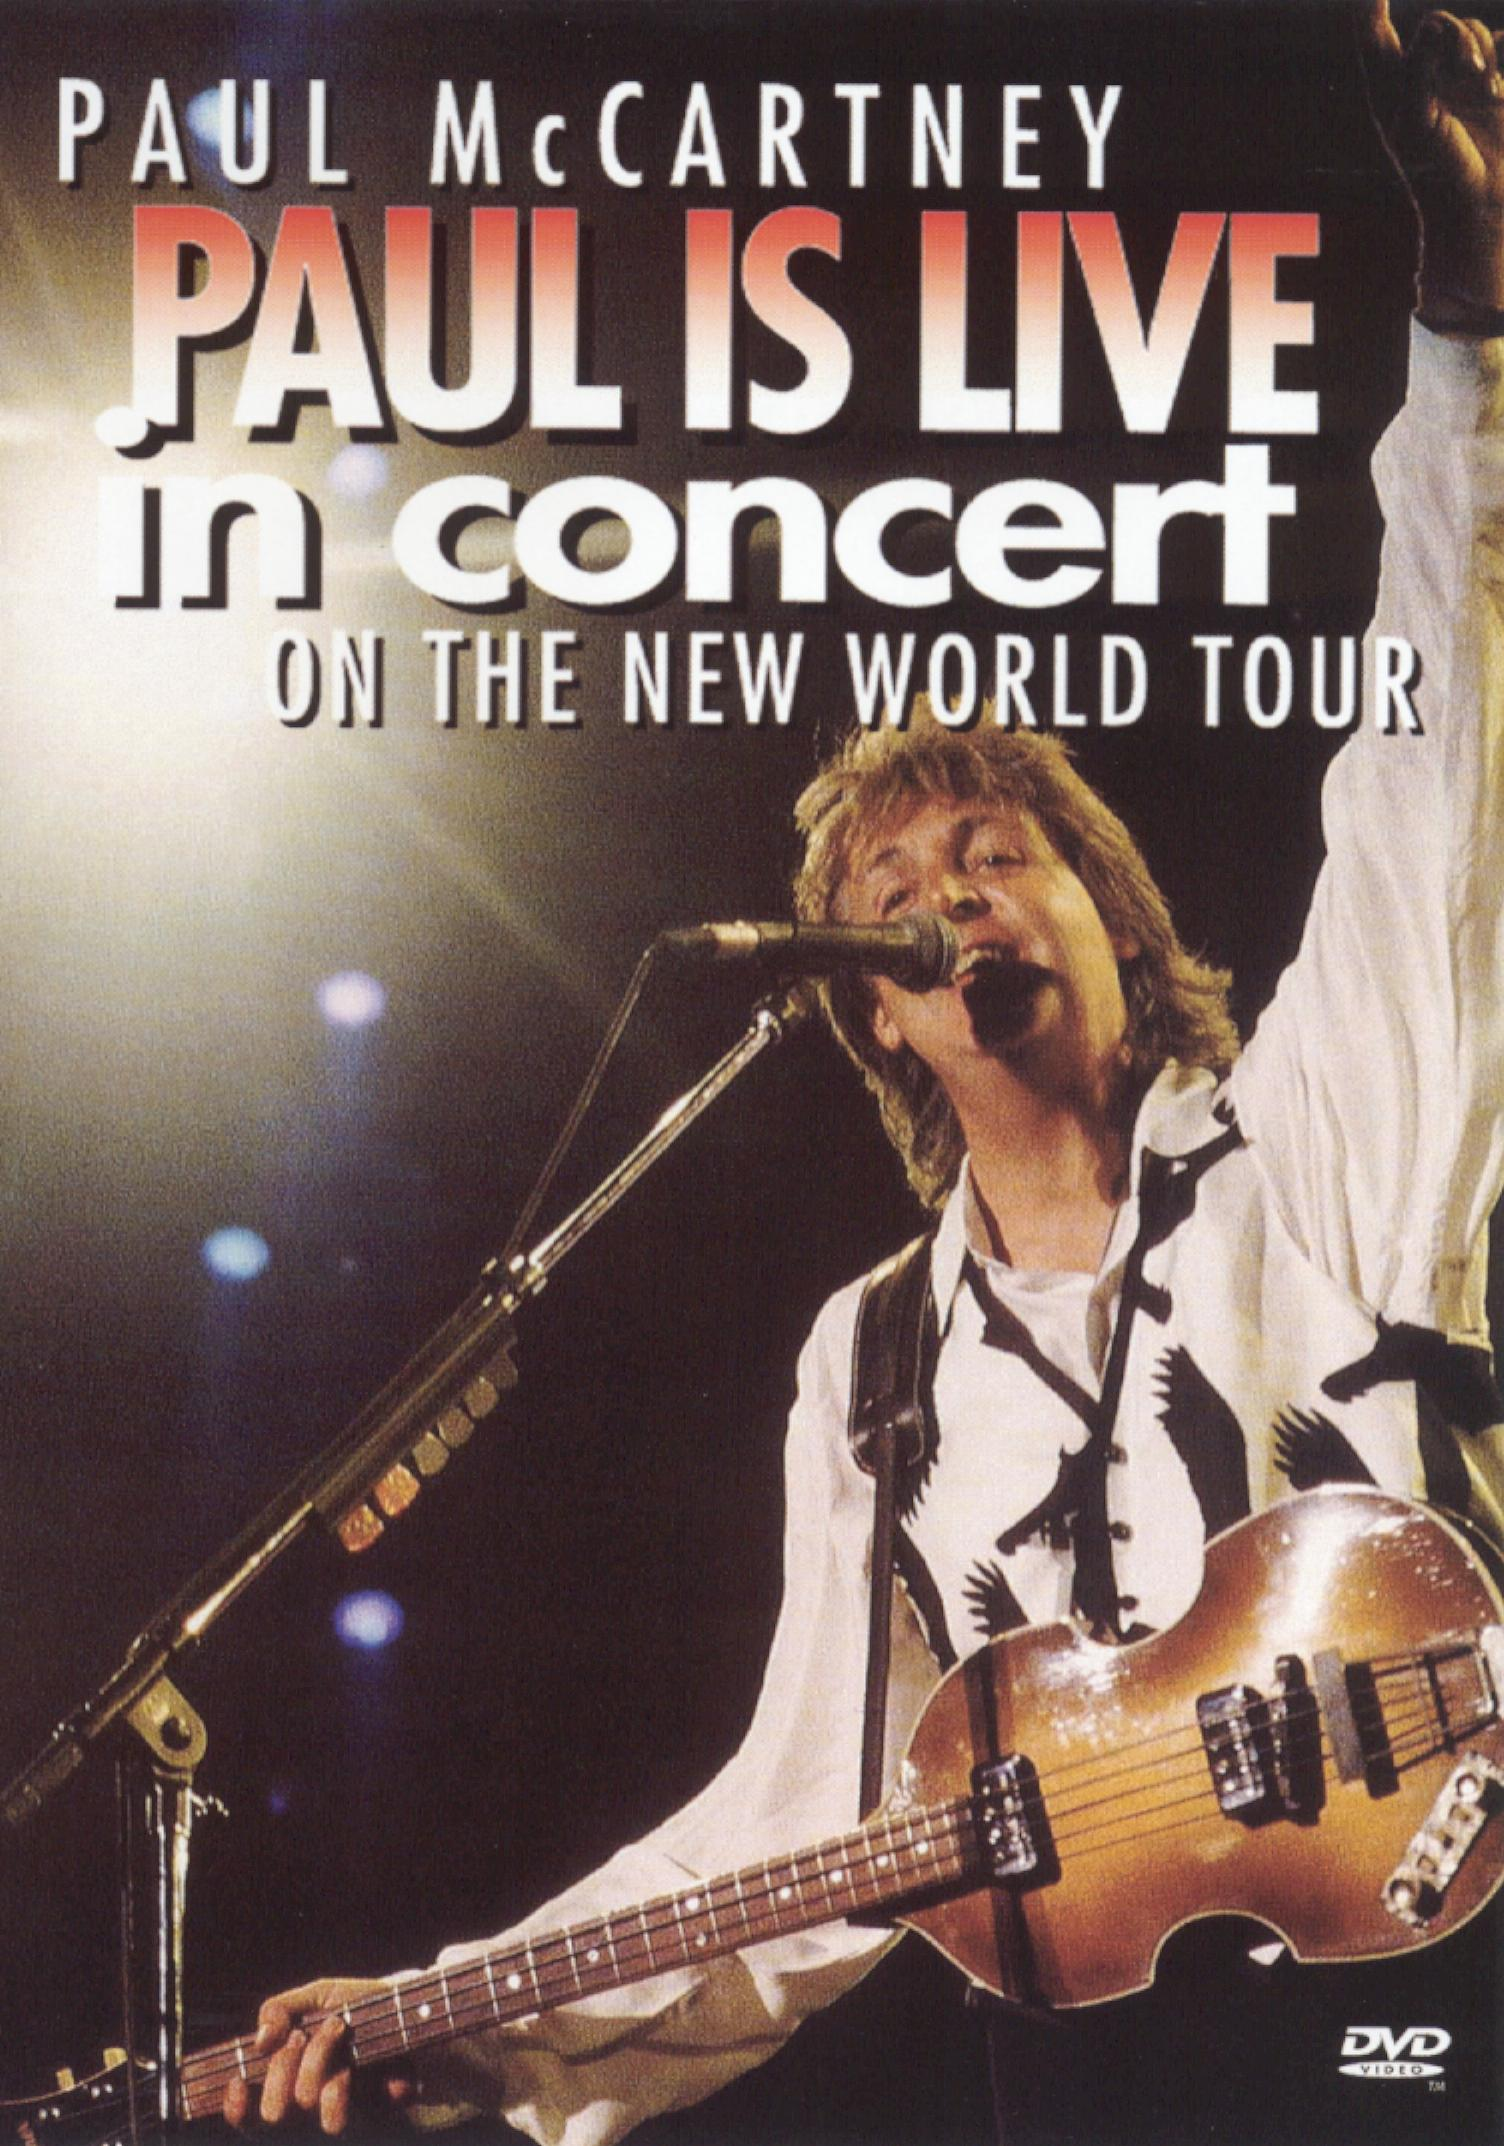 Paul McCartney: Paul is Live in Concert on the New World Tour